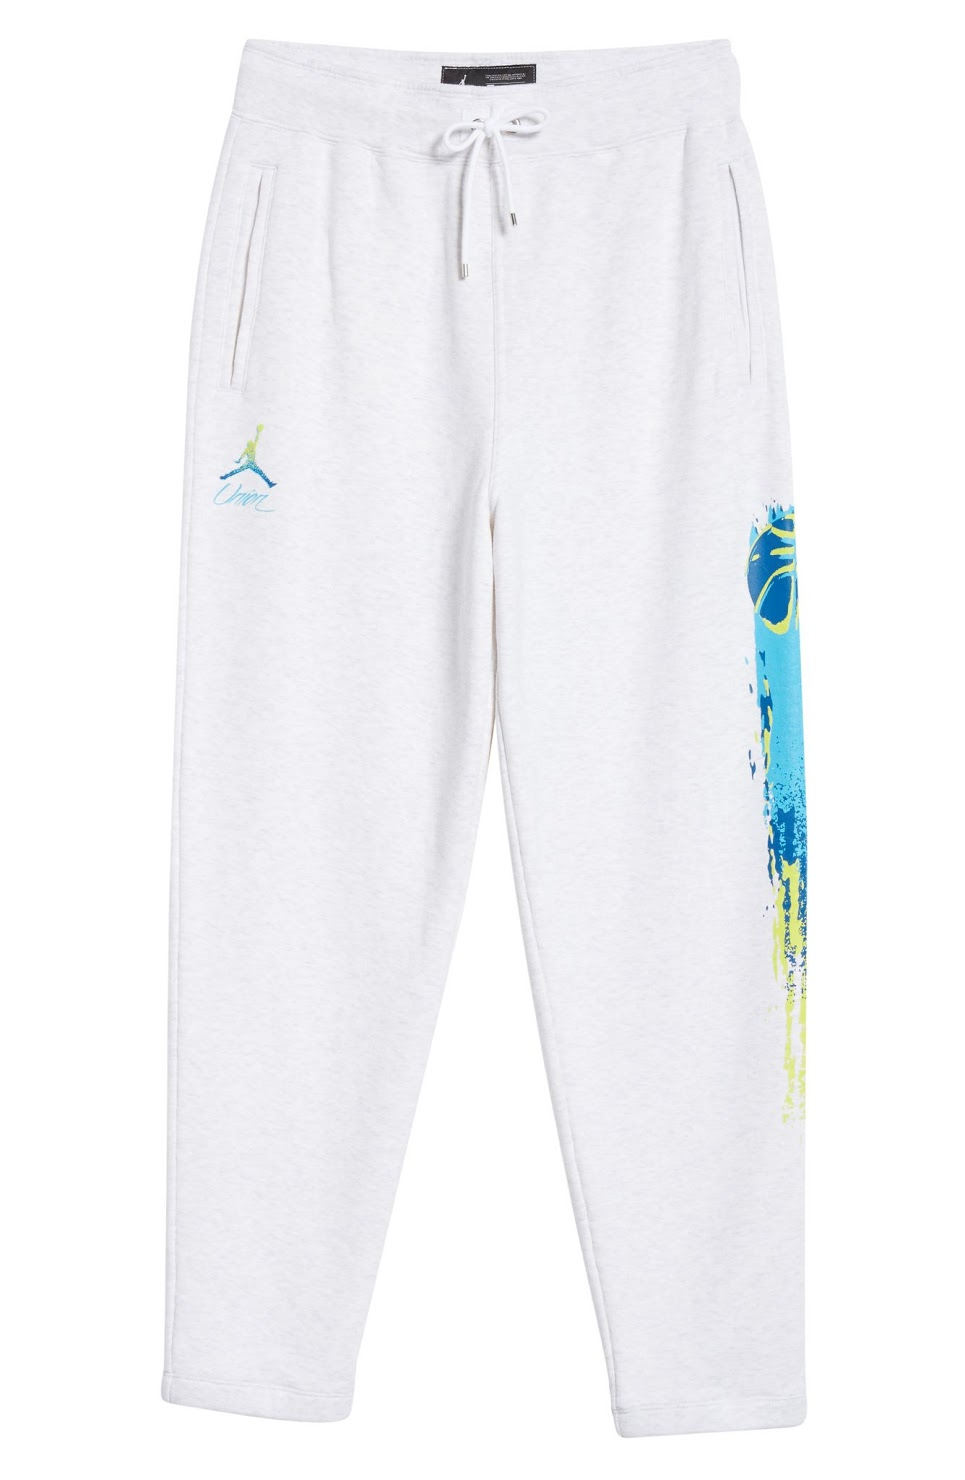 Jordan_Fleece Pant in Birch Heather_$100.jpeg